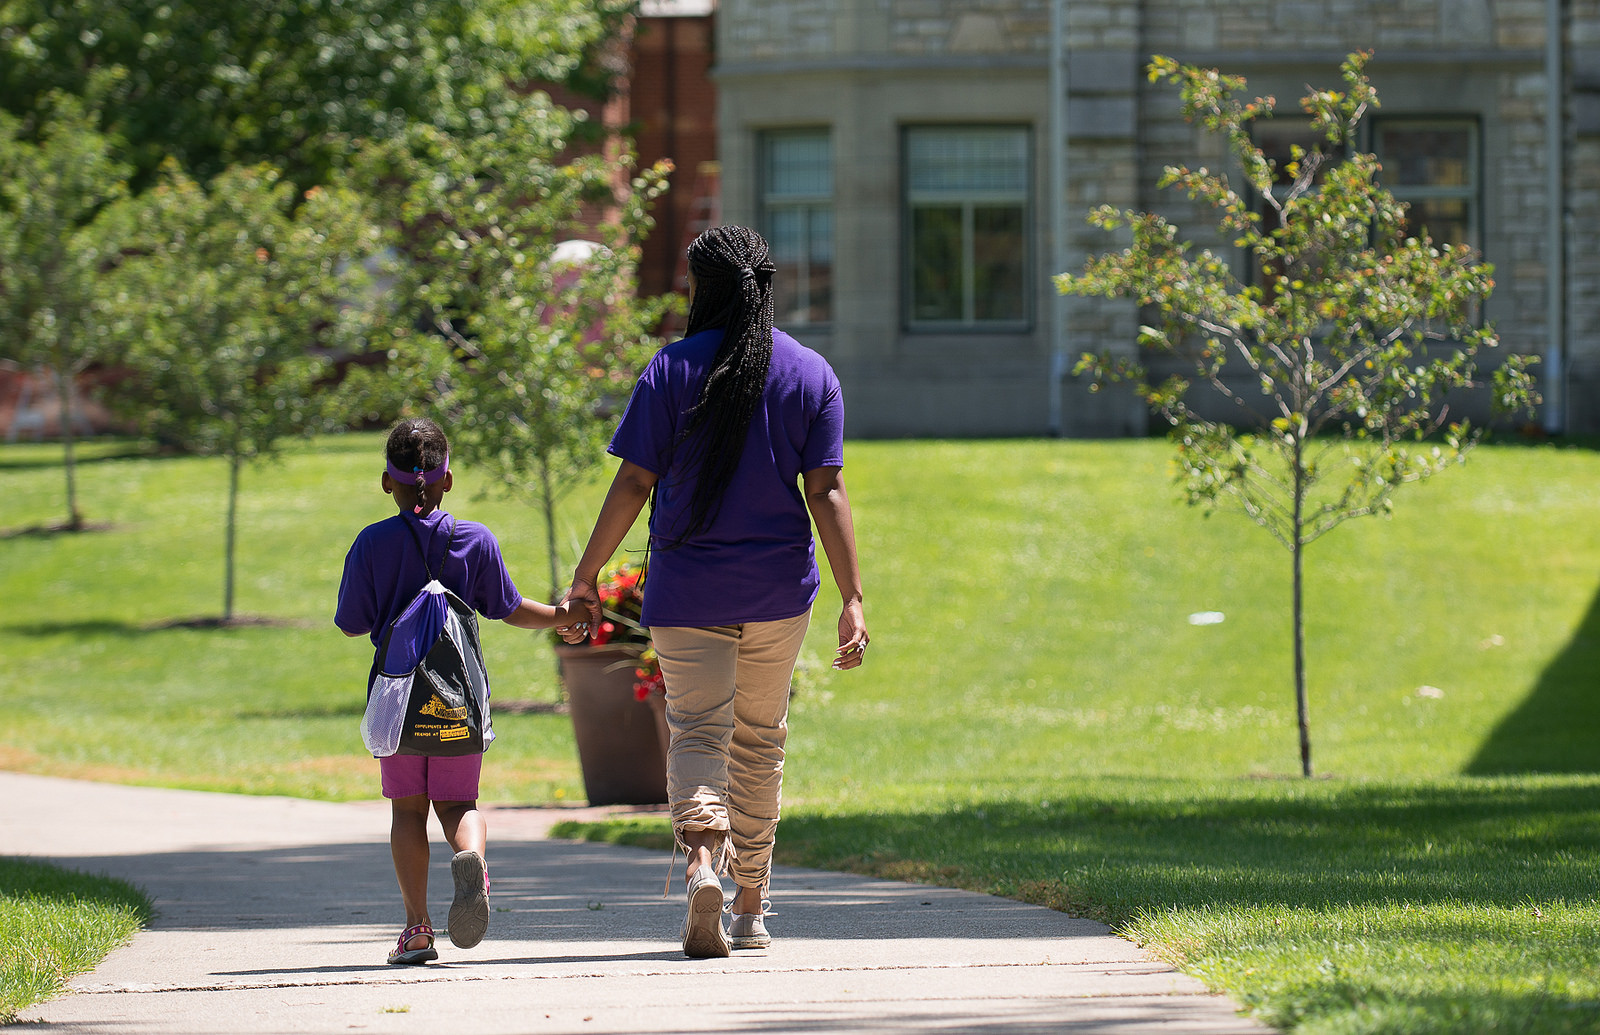 The Parallels of Parenting and Moving Towards Equity